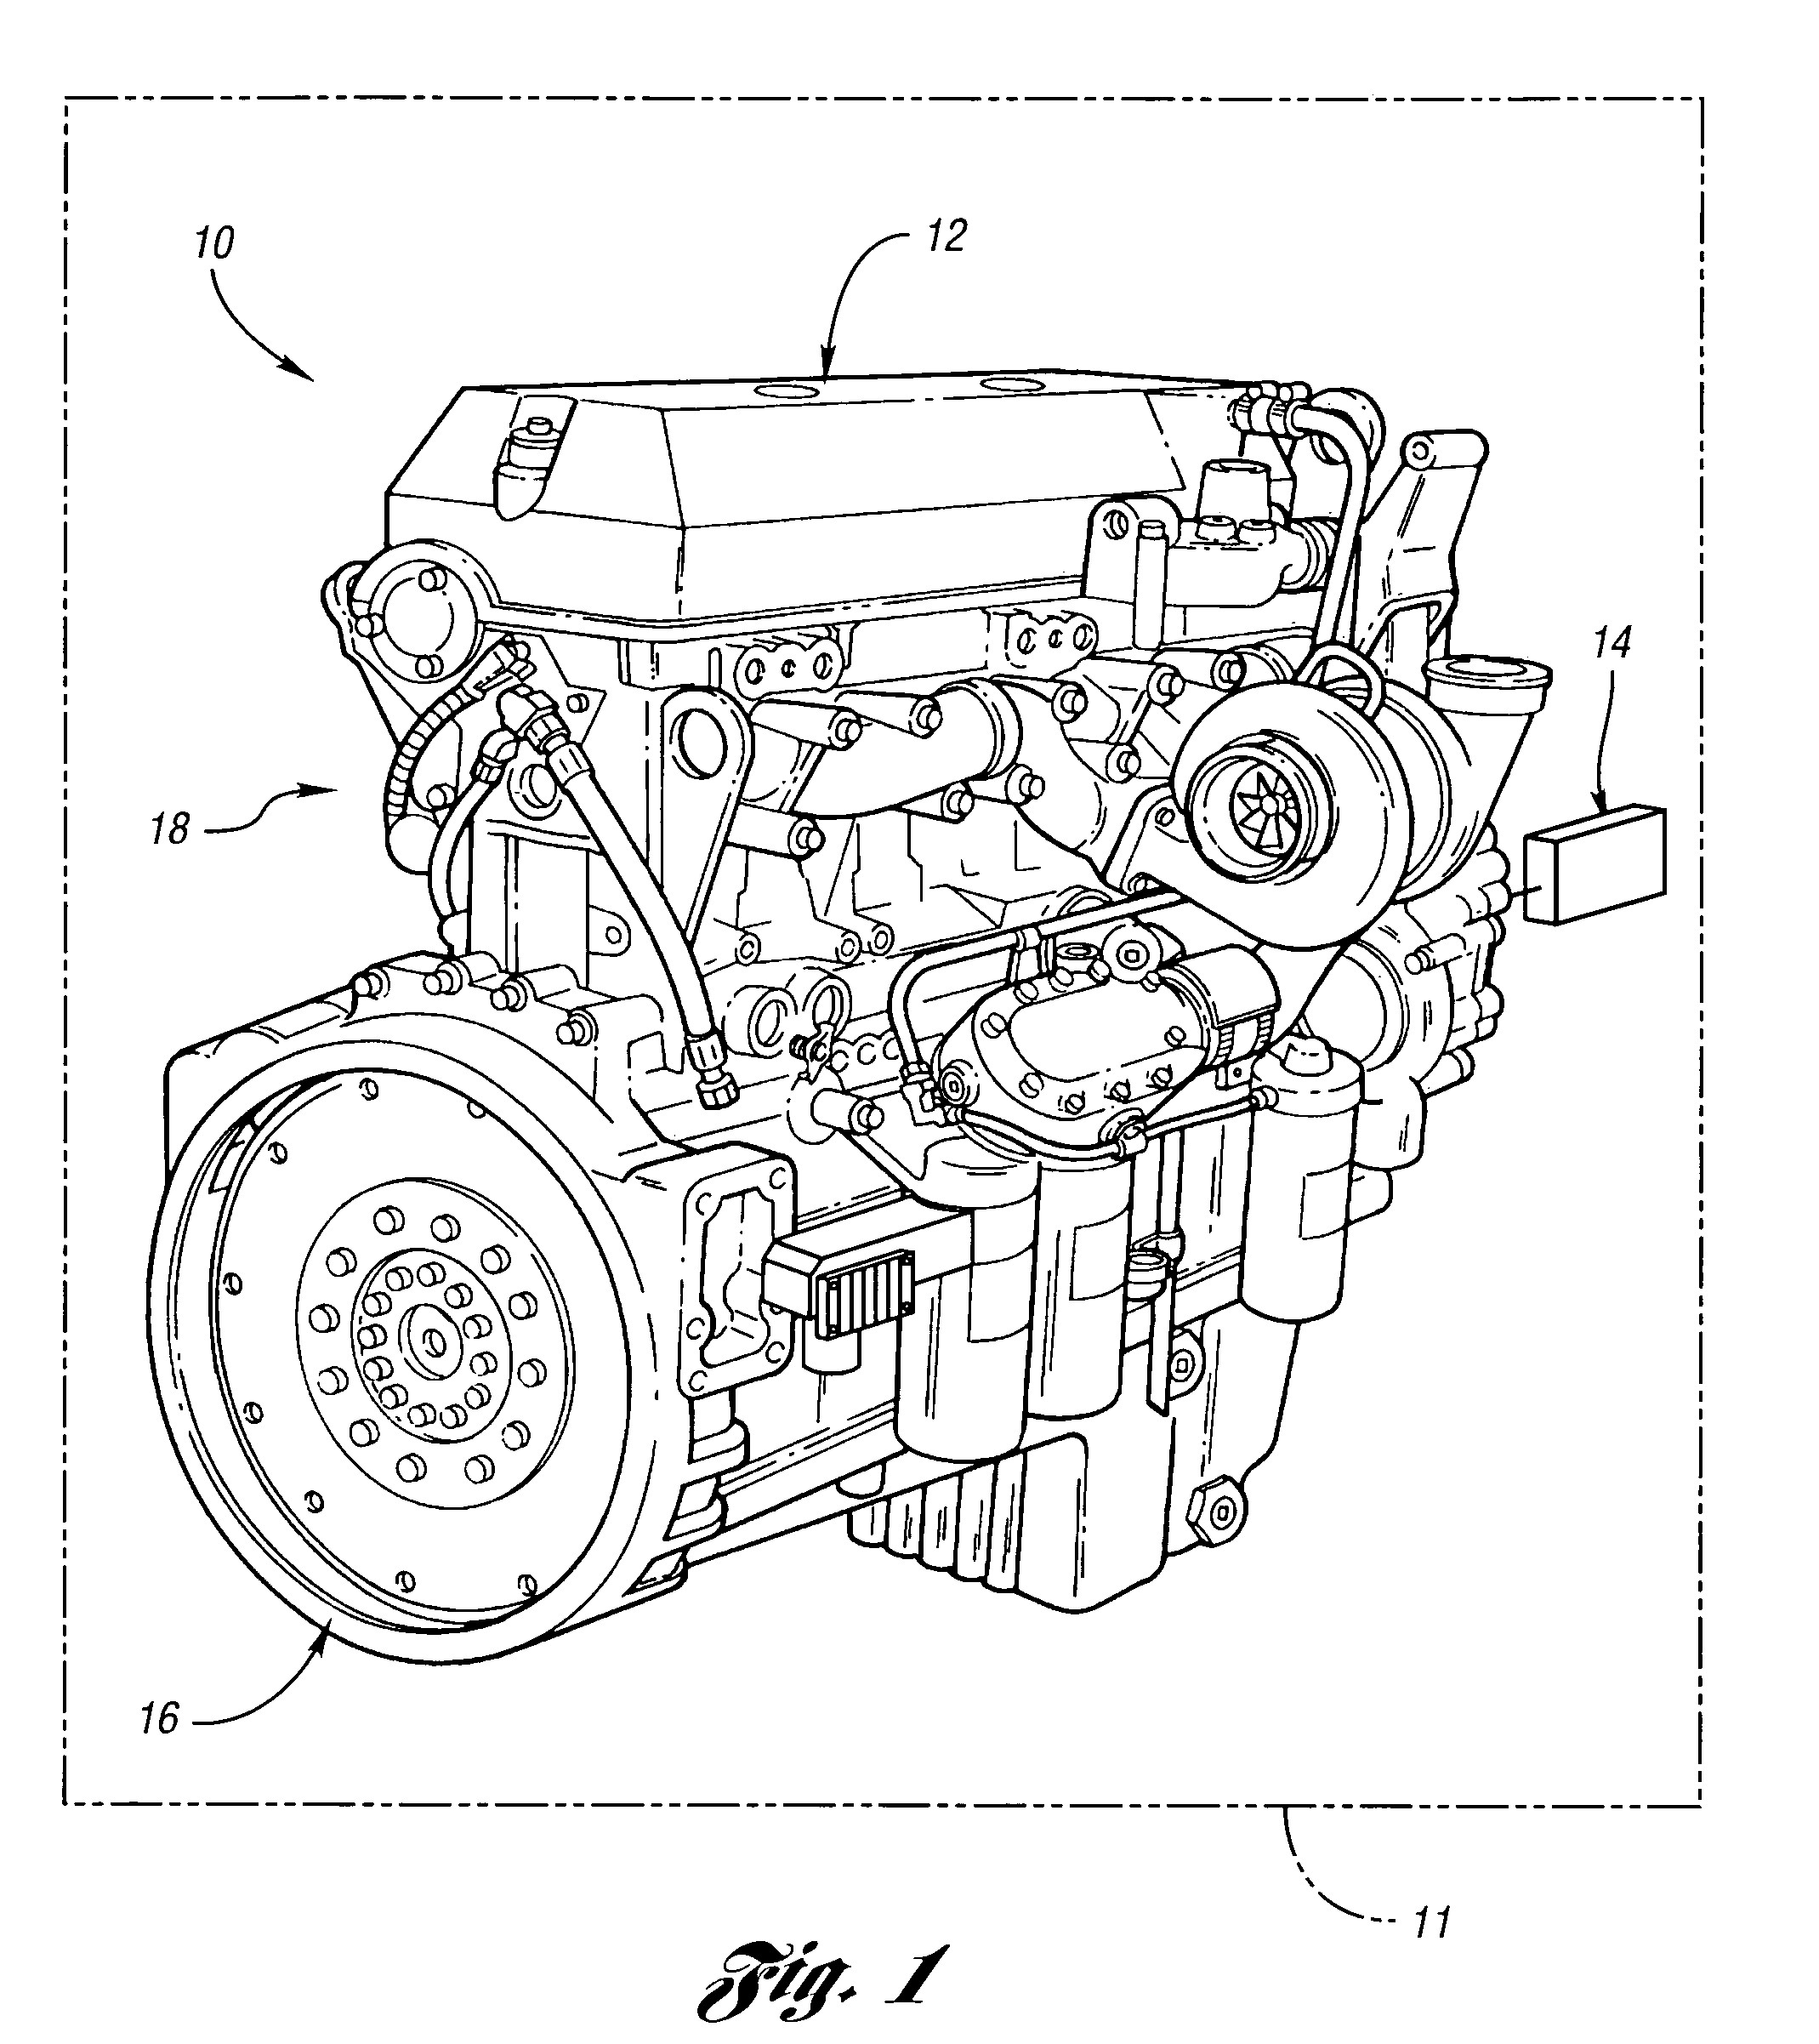 Detroit Diesel Series 60 Engine Diagram Patent Us Automatic thermostat Mode Time Limit for Of Detroit Diesel Series 60 Engine Diagram